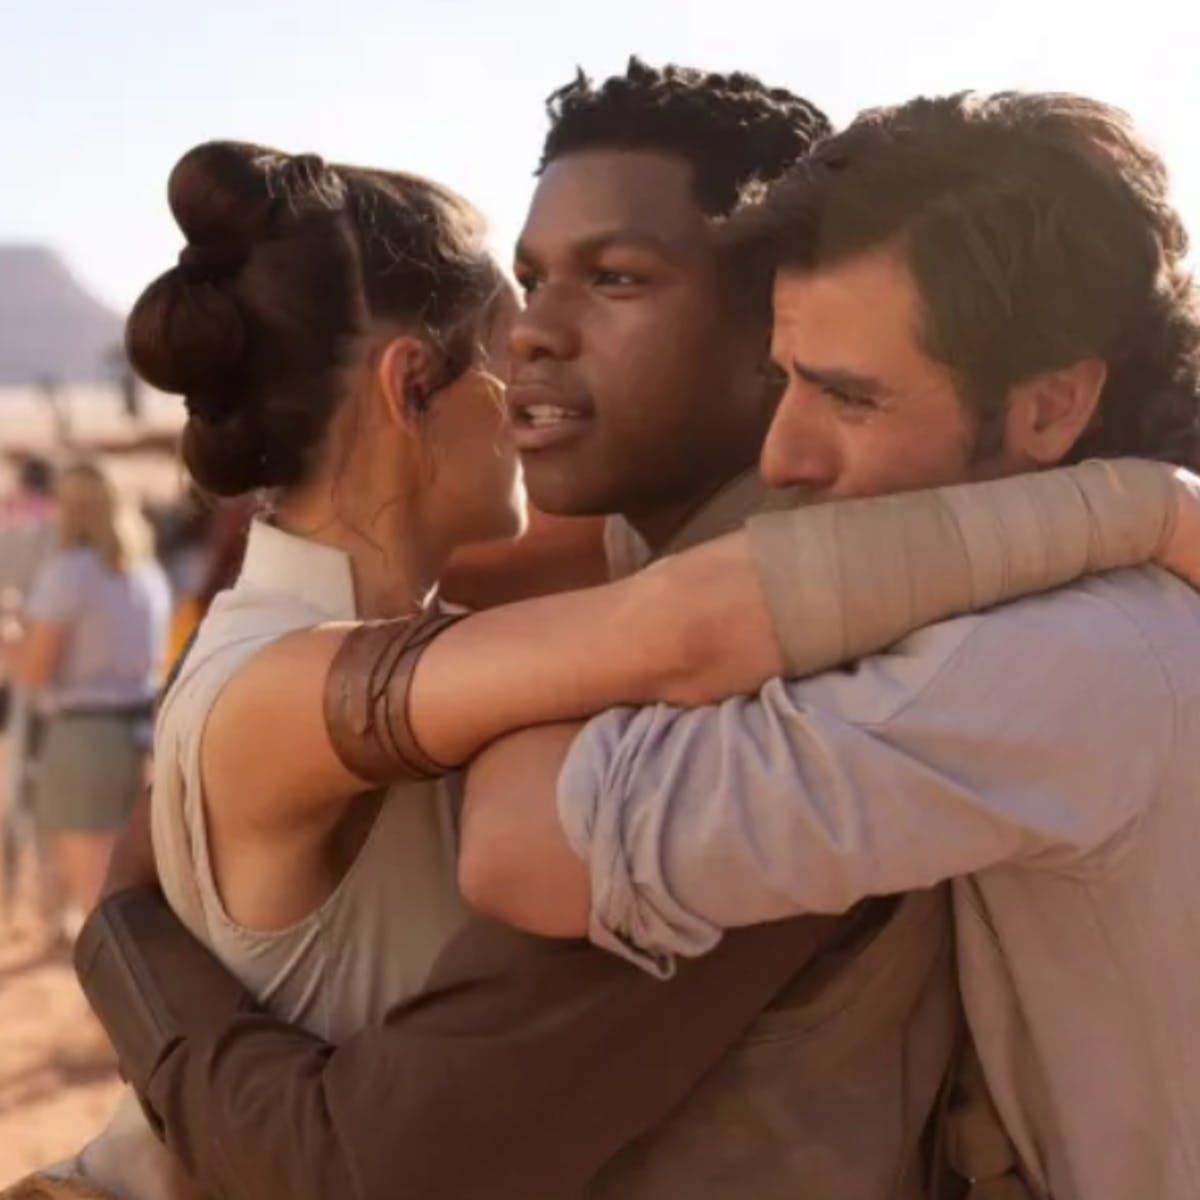 Star Wars: The Rise of Skywalker': Episode 9 Trailer, Title Revealed